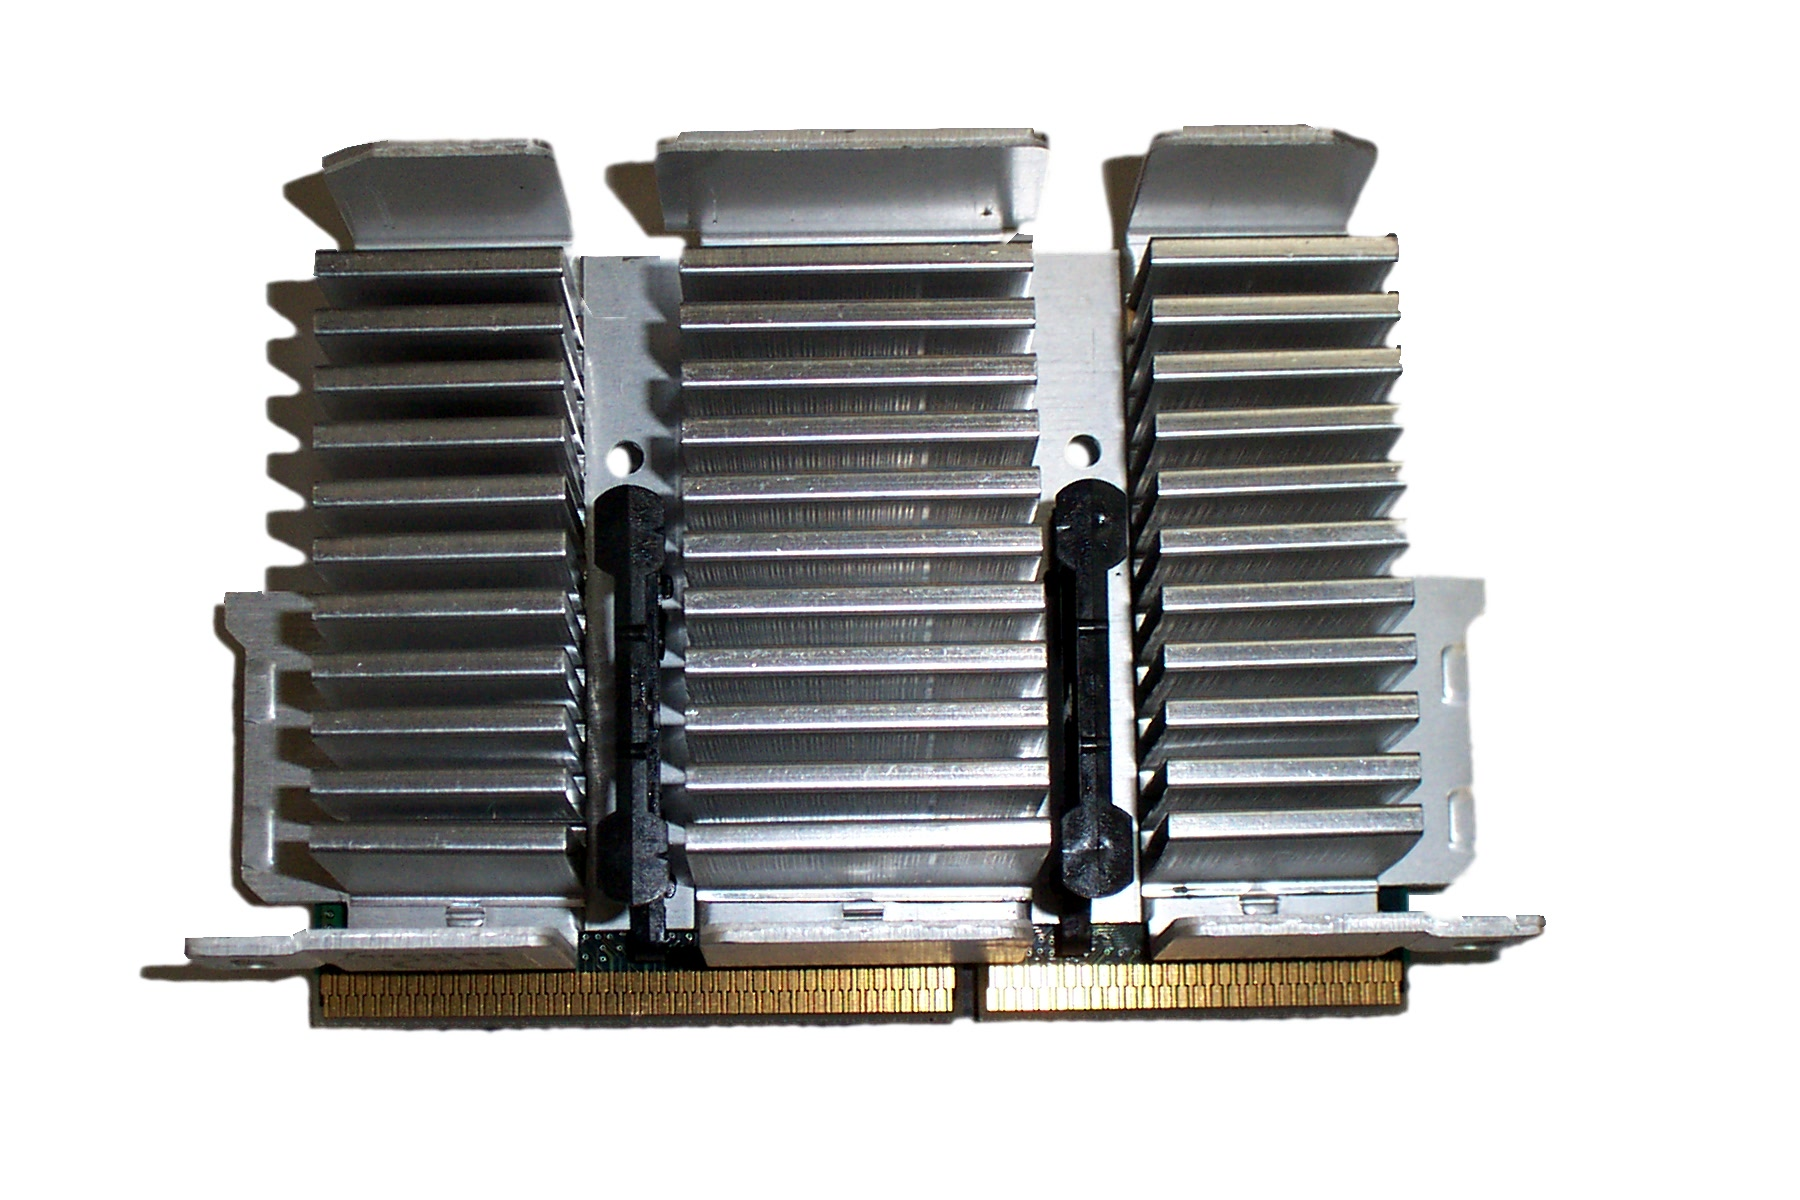 Intel SL3XL Pentium 3 667MHz Slot 1 Processor with Dell 151VE Heatsink